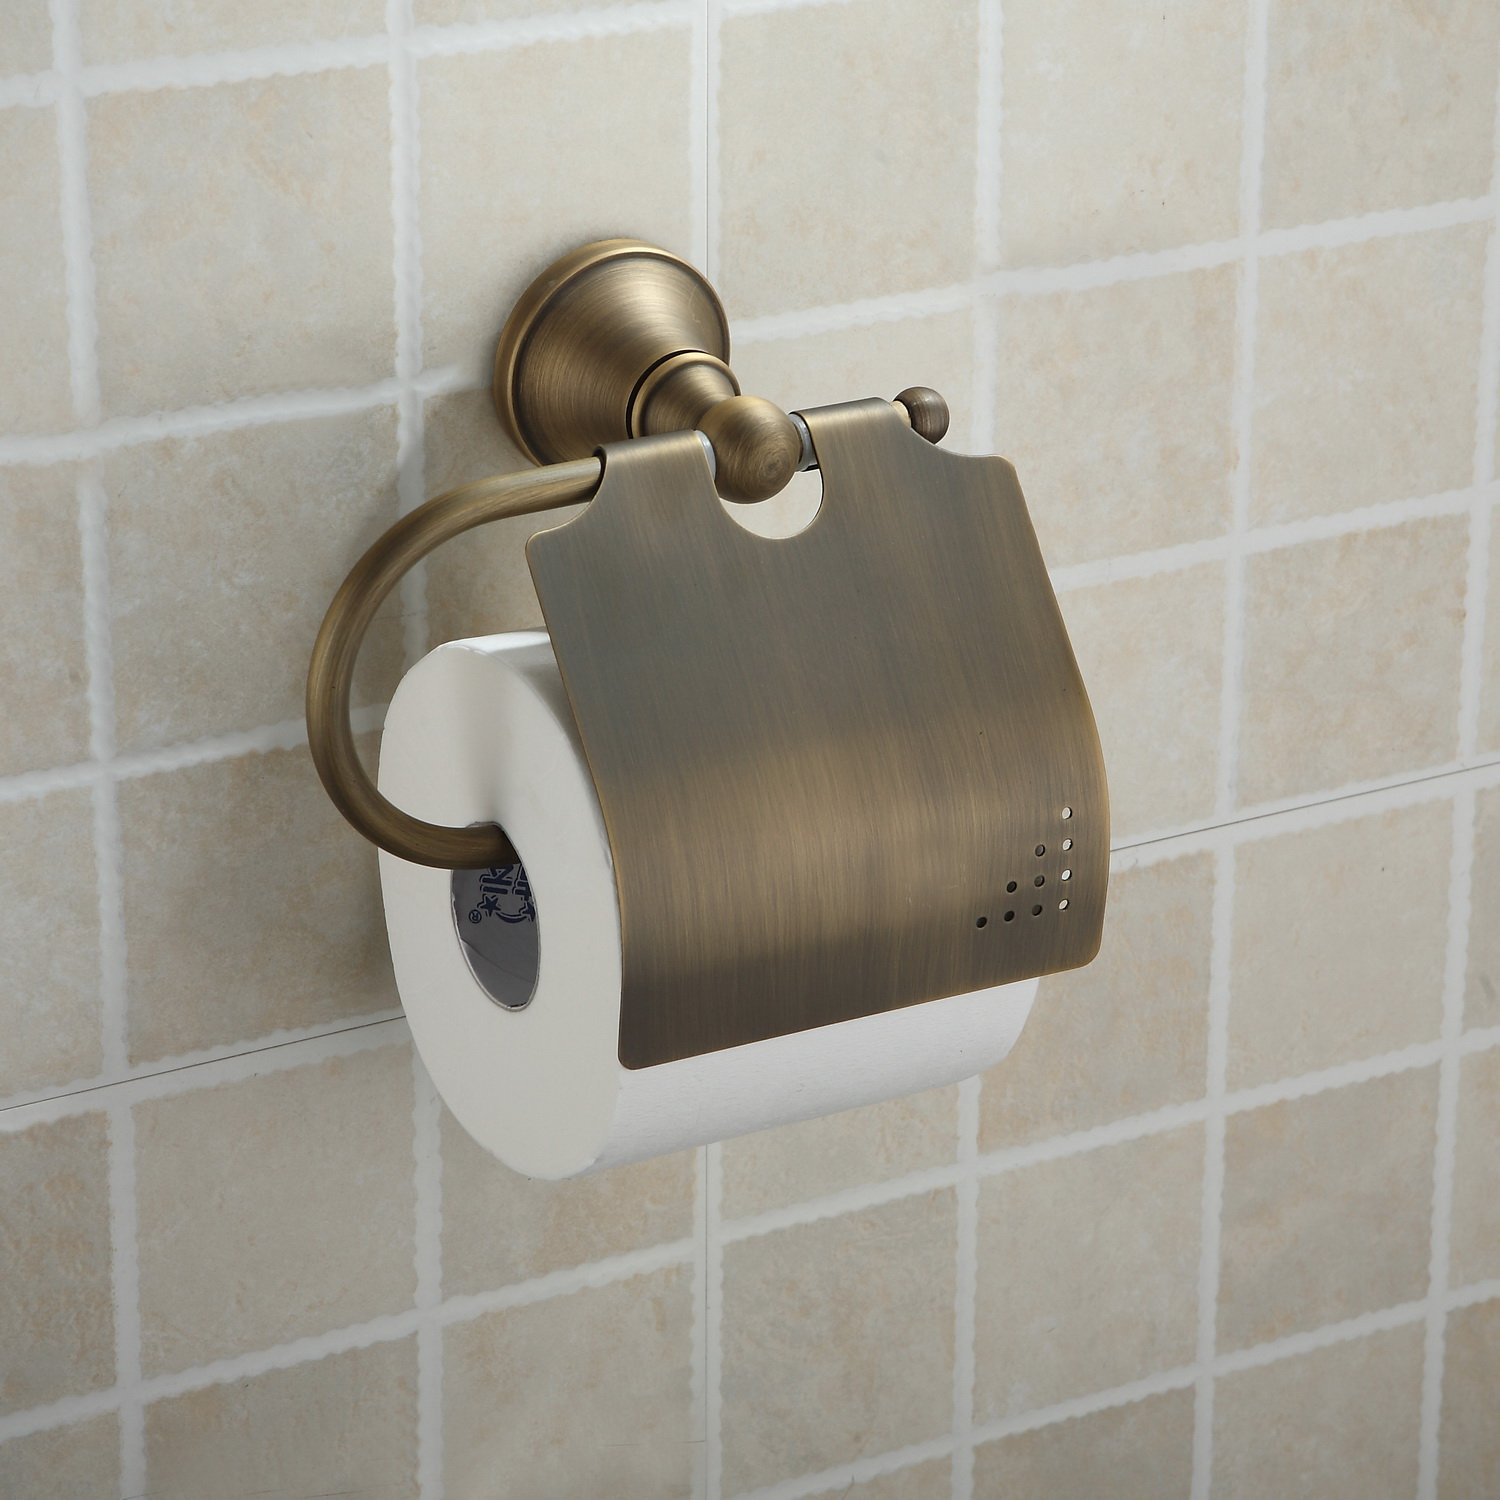 LightInTheBox Antique Brass Wall-mounted Toilet Roll Holder (1018-J-29-6)